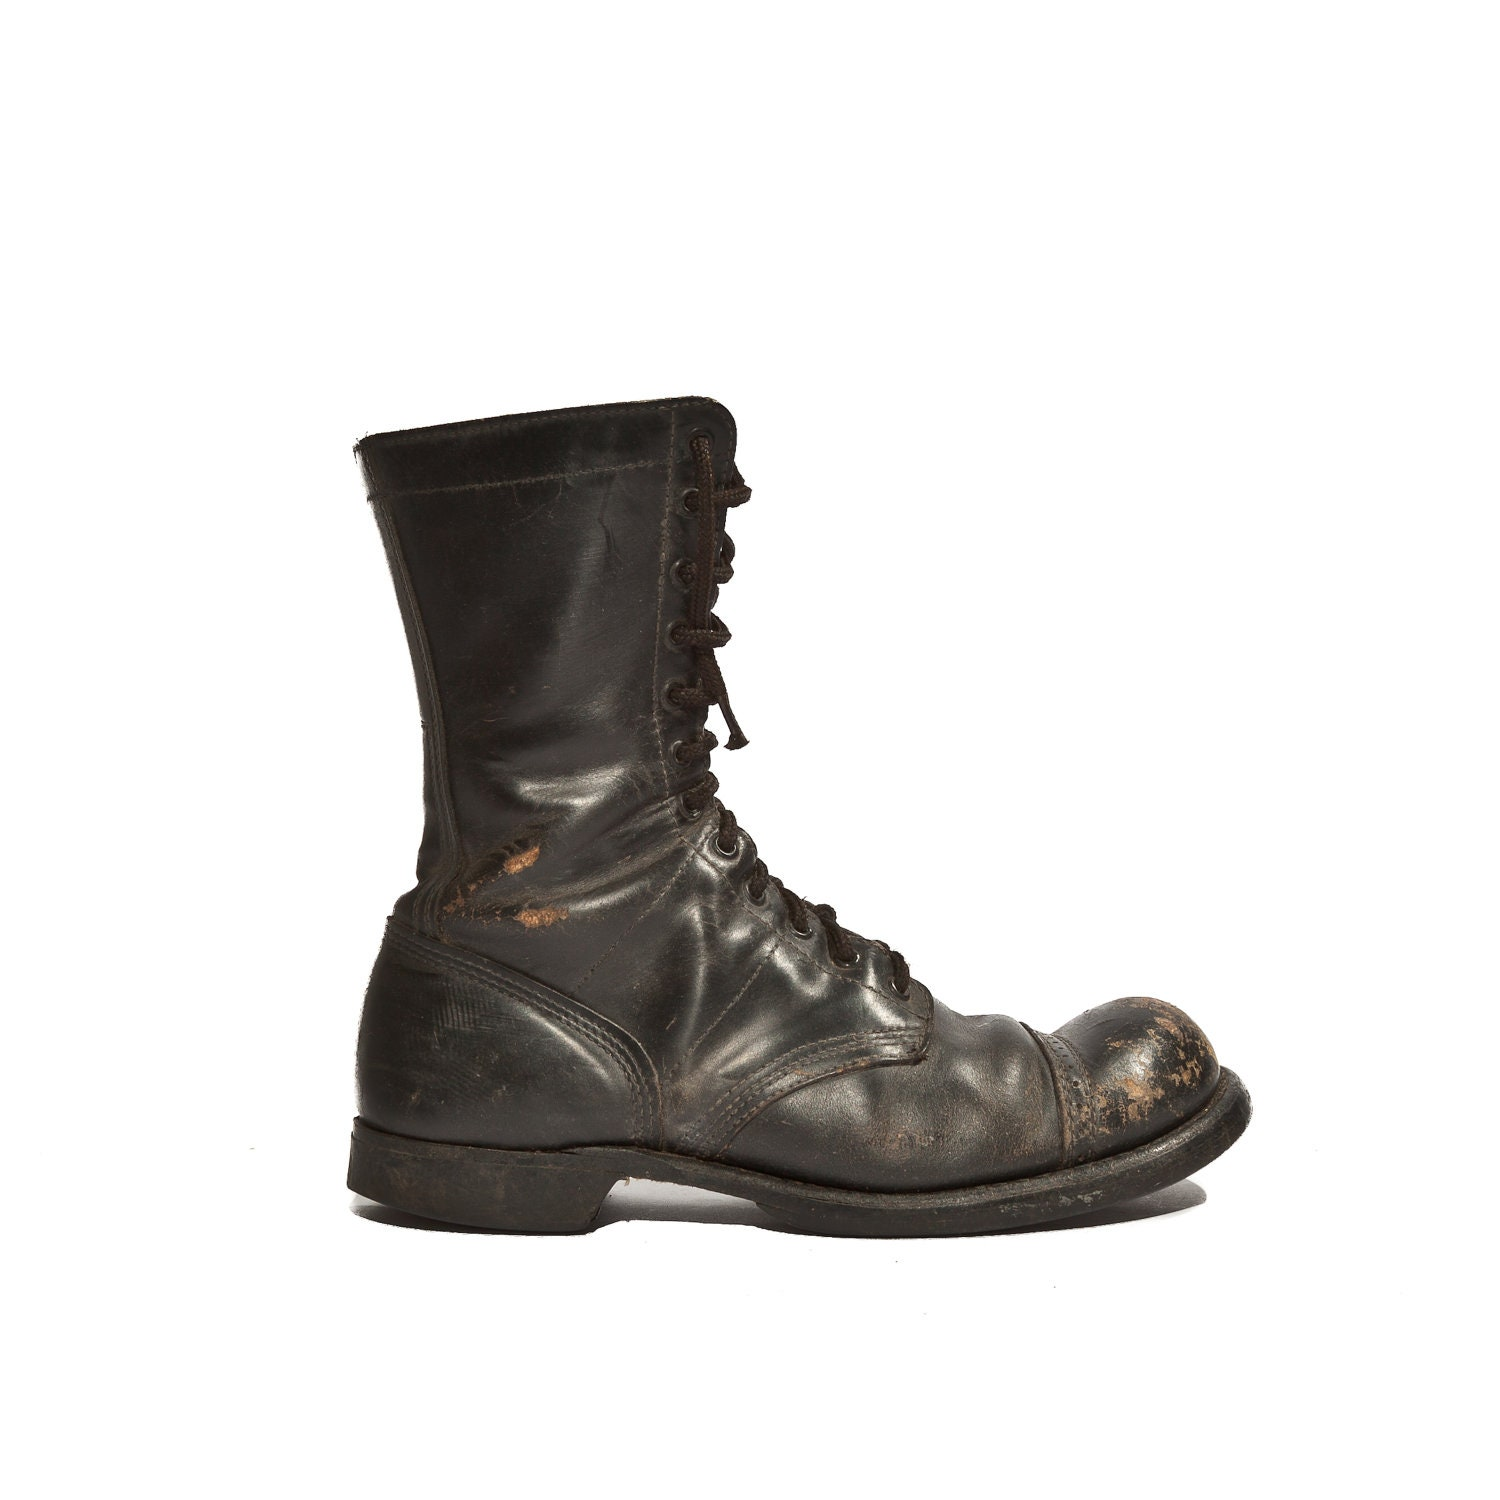 s vintage combat boots by corcoran in a by